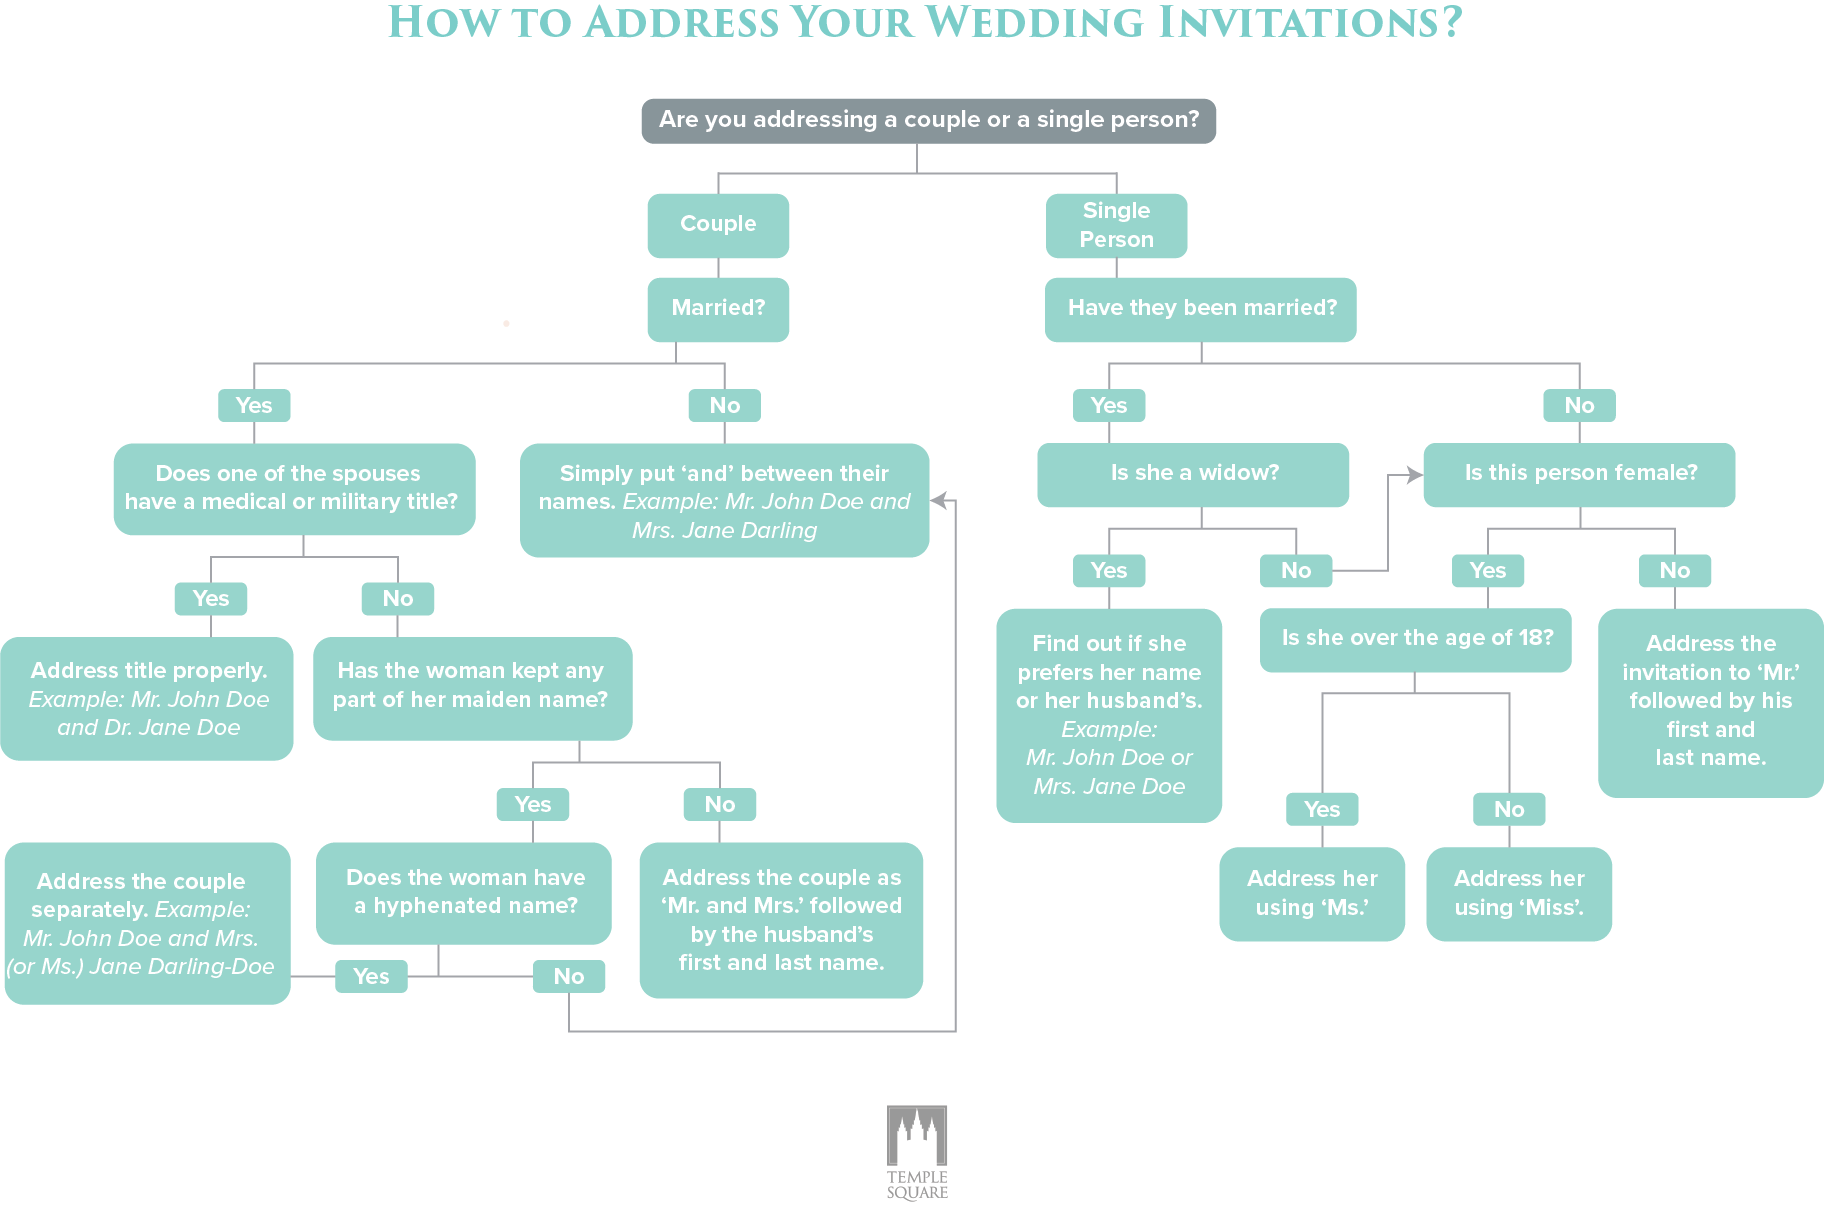 How to Address Wedding Invitations | Wedding invitation addressing ...